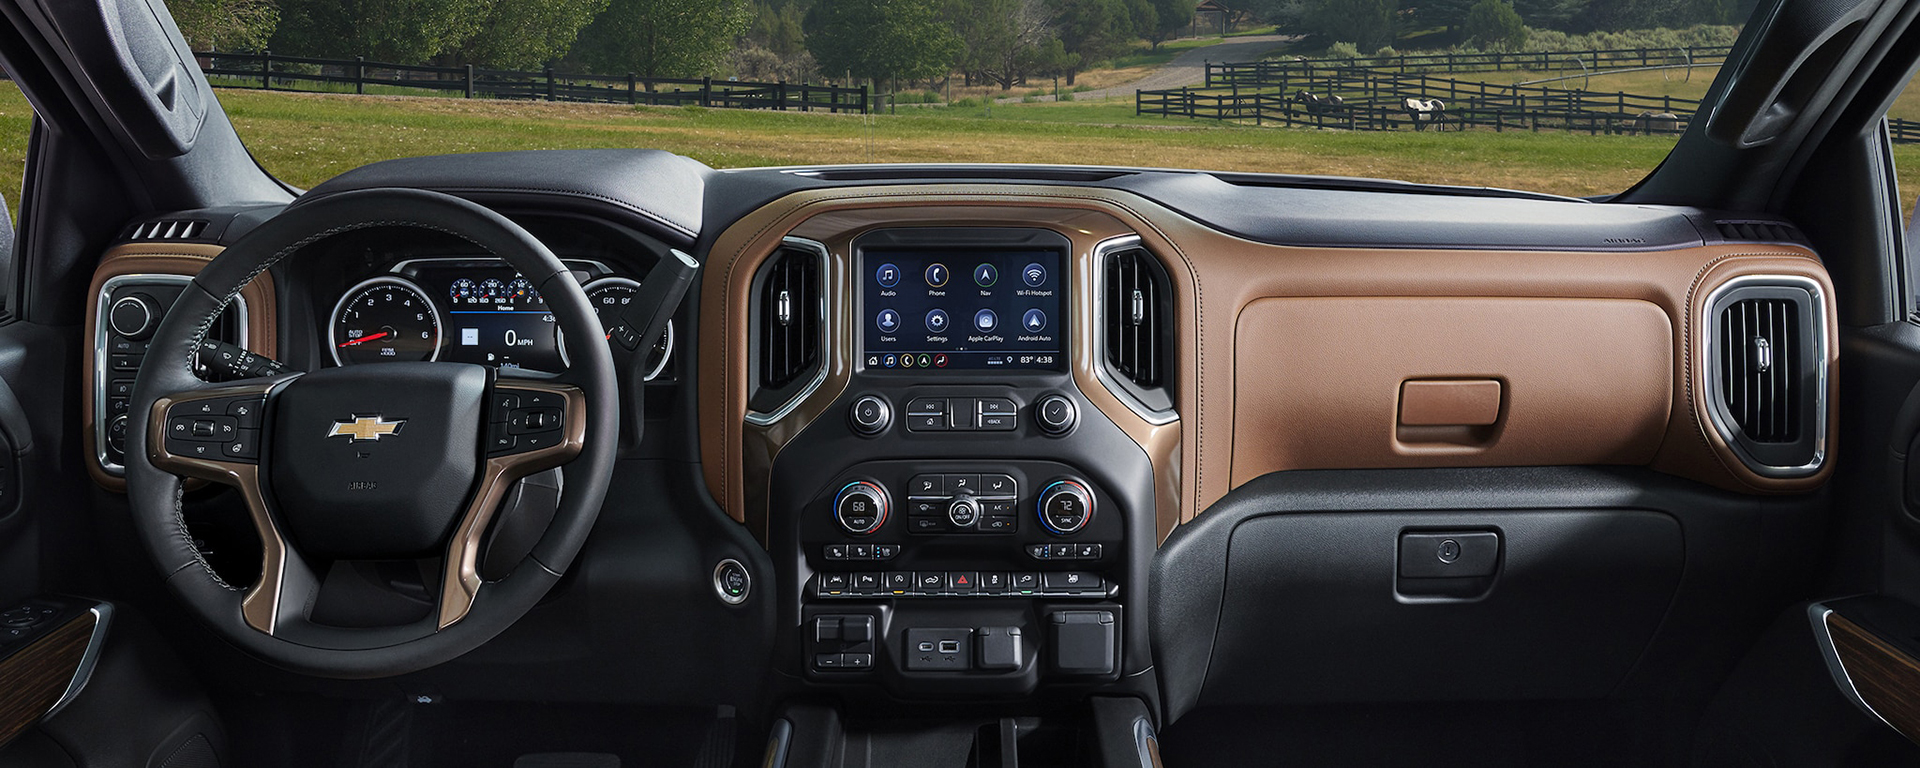 2020 Chevrolet Silverado Technology